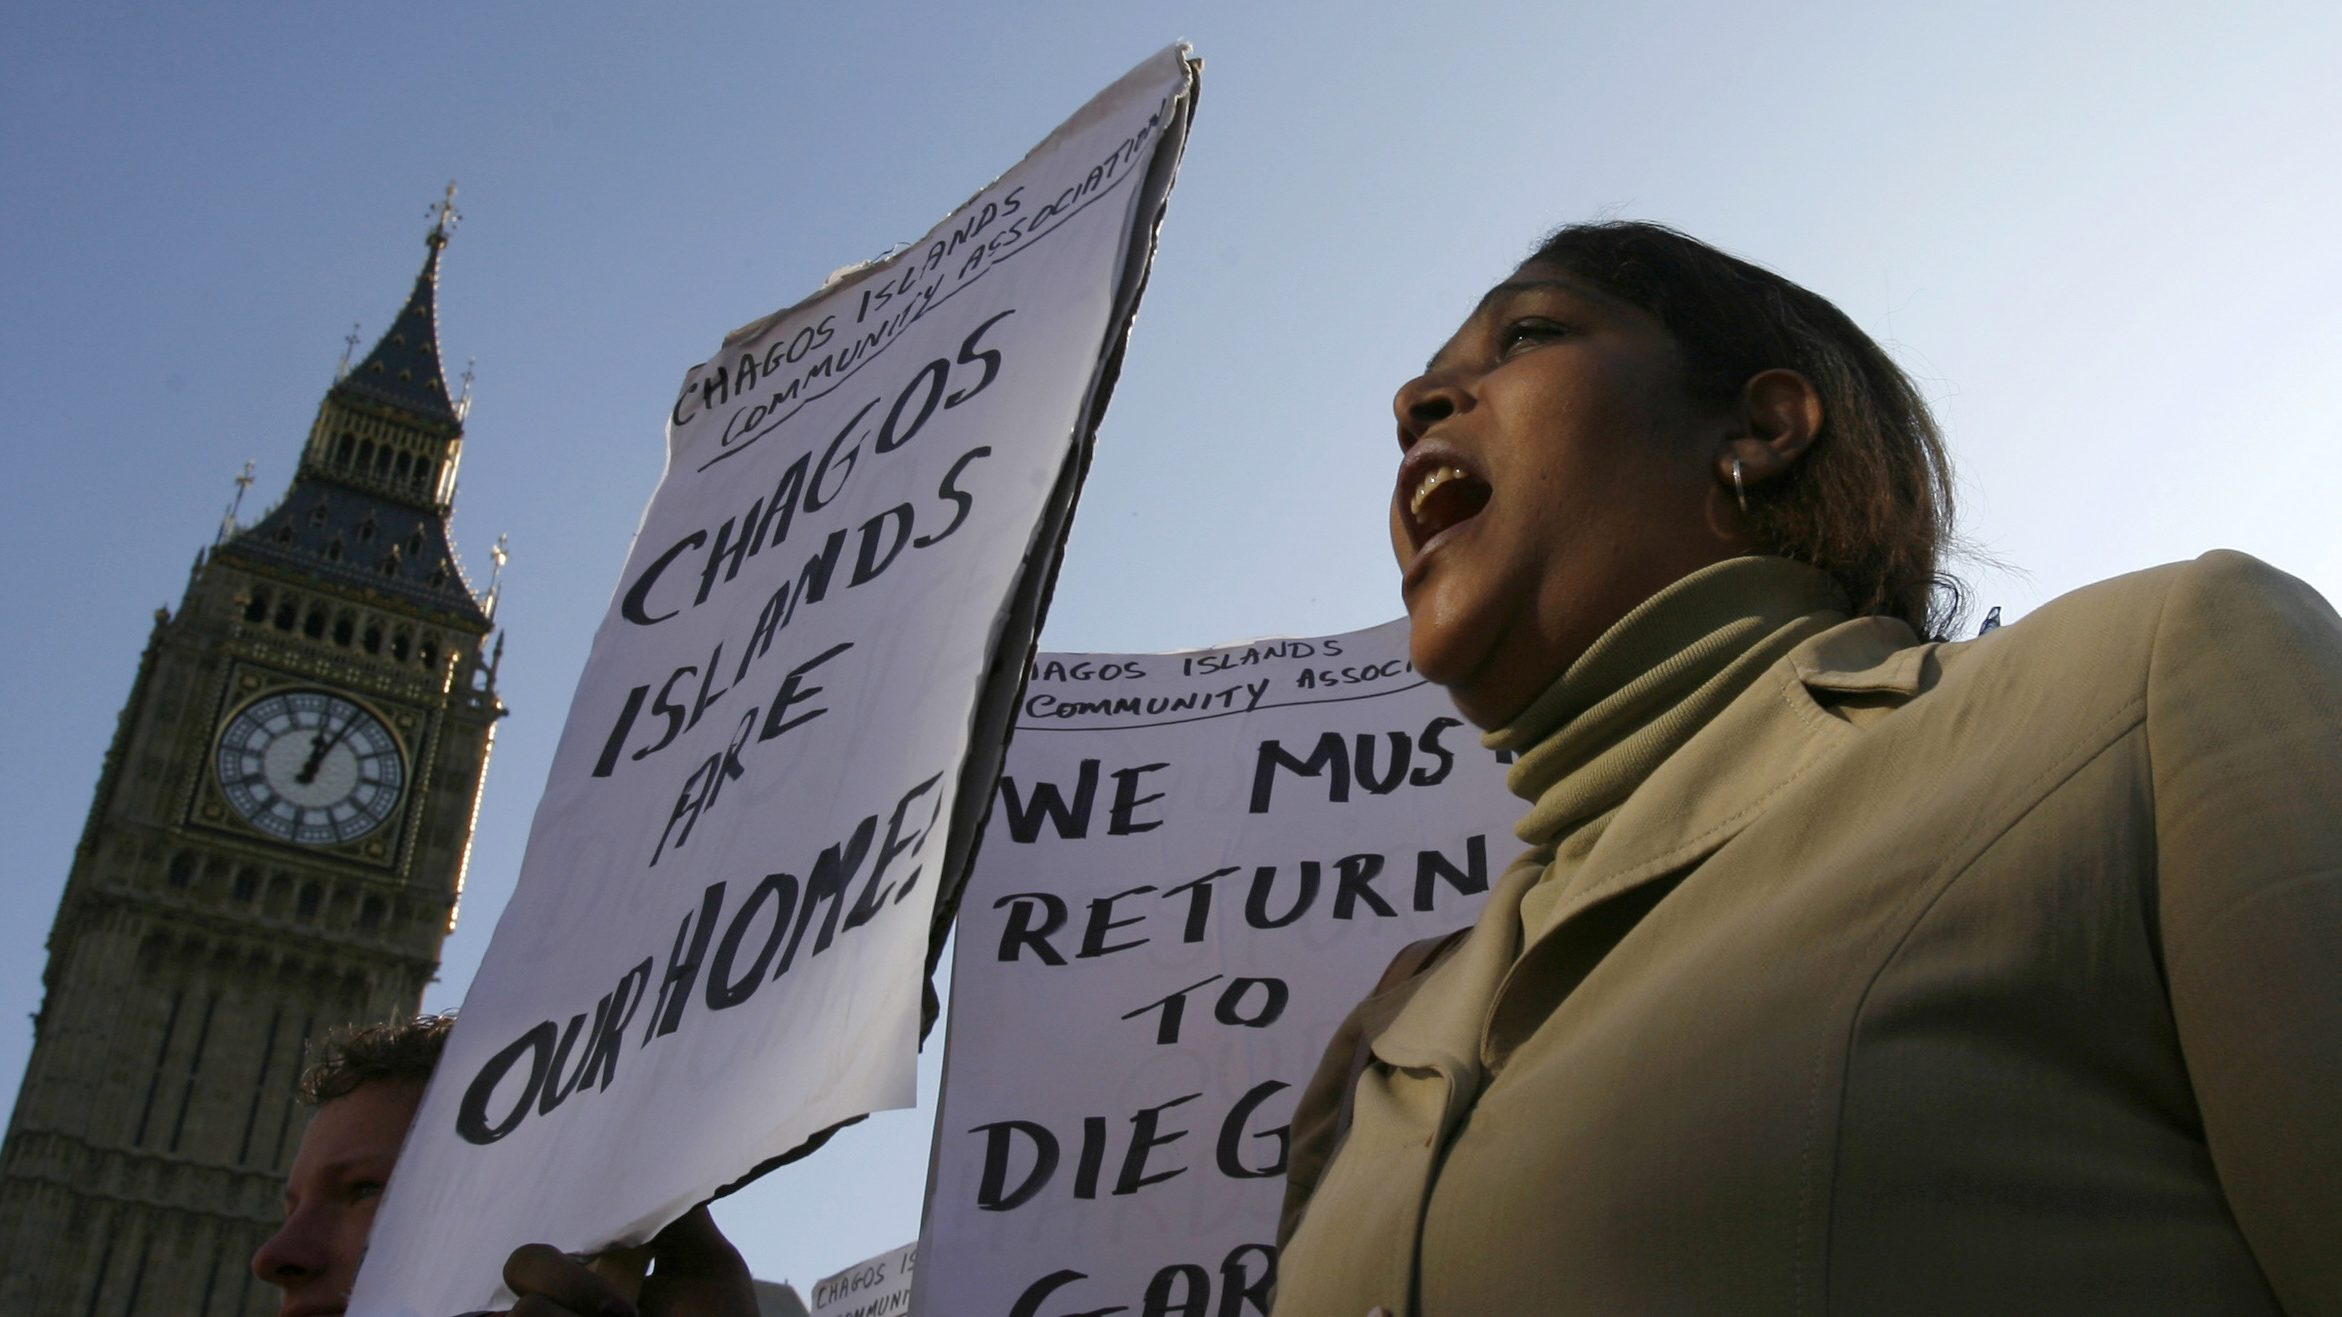 Britain must give back Chagos Islands to Mauritius